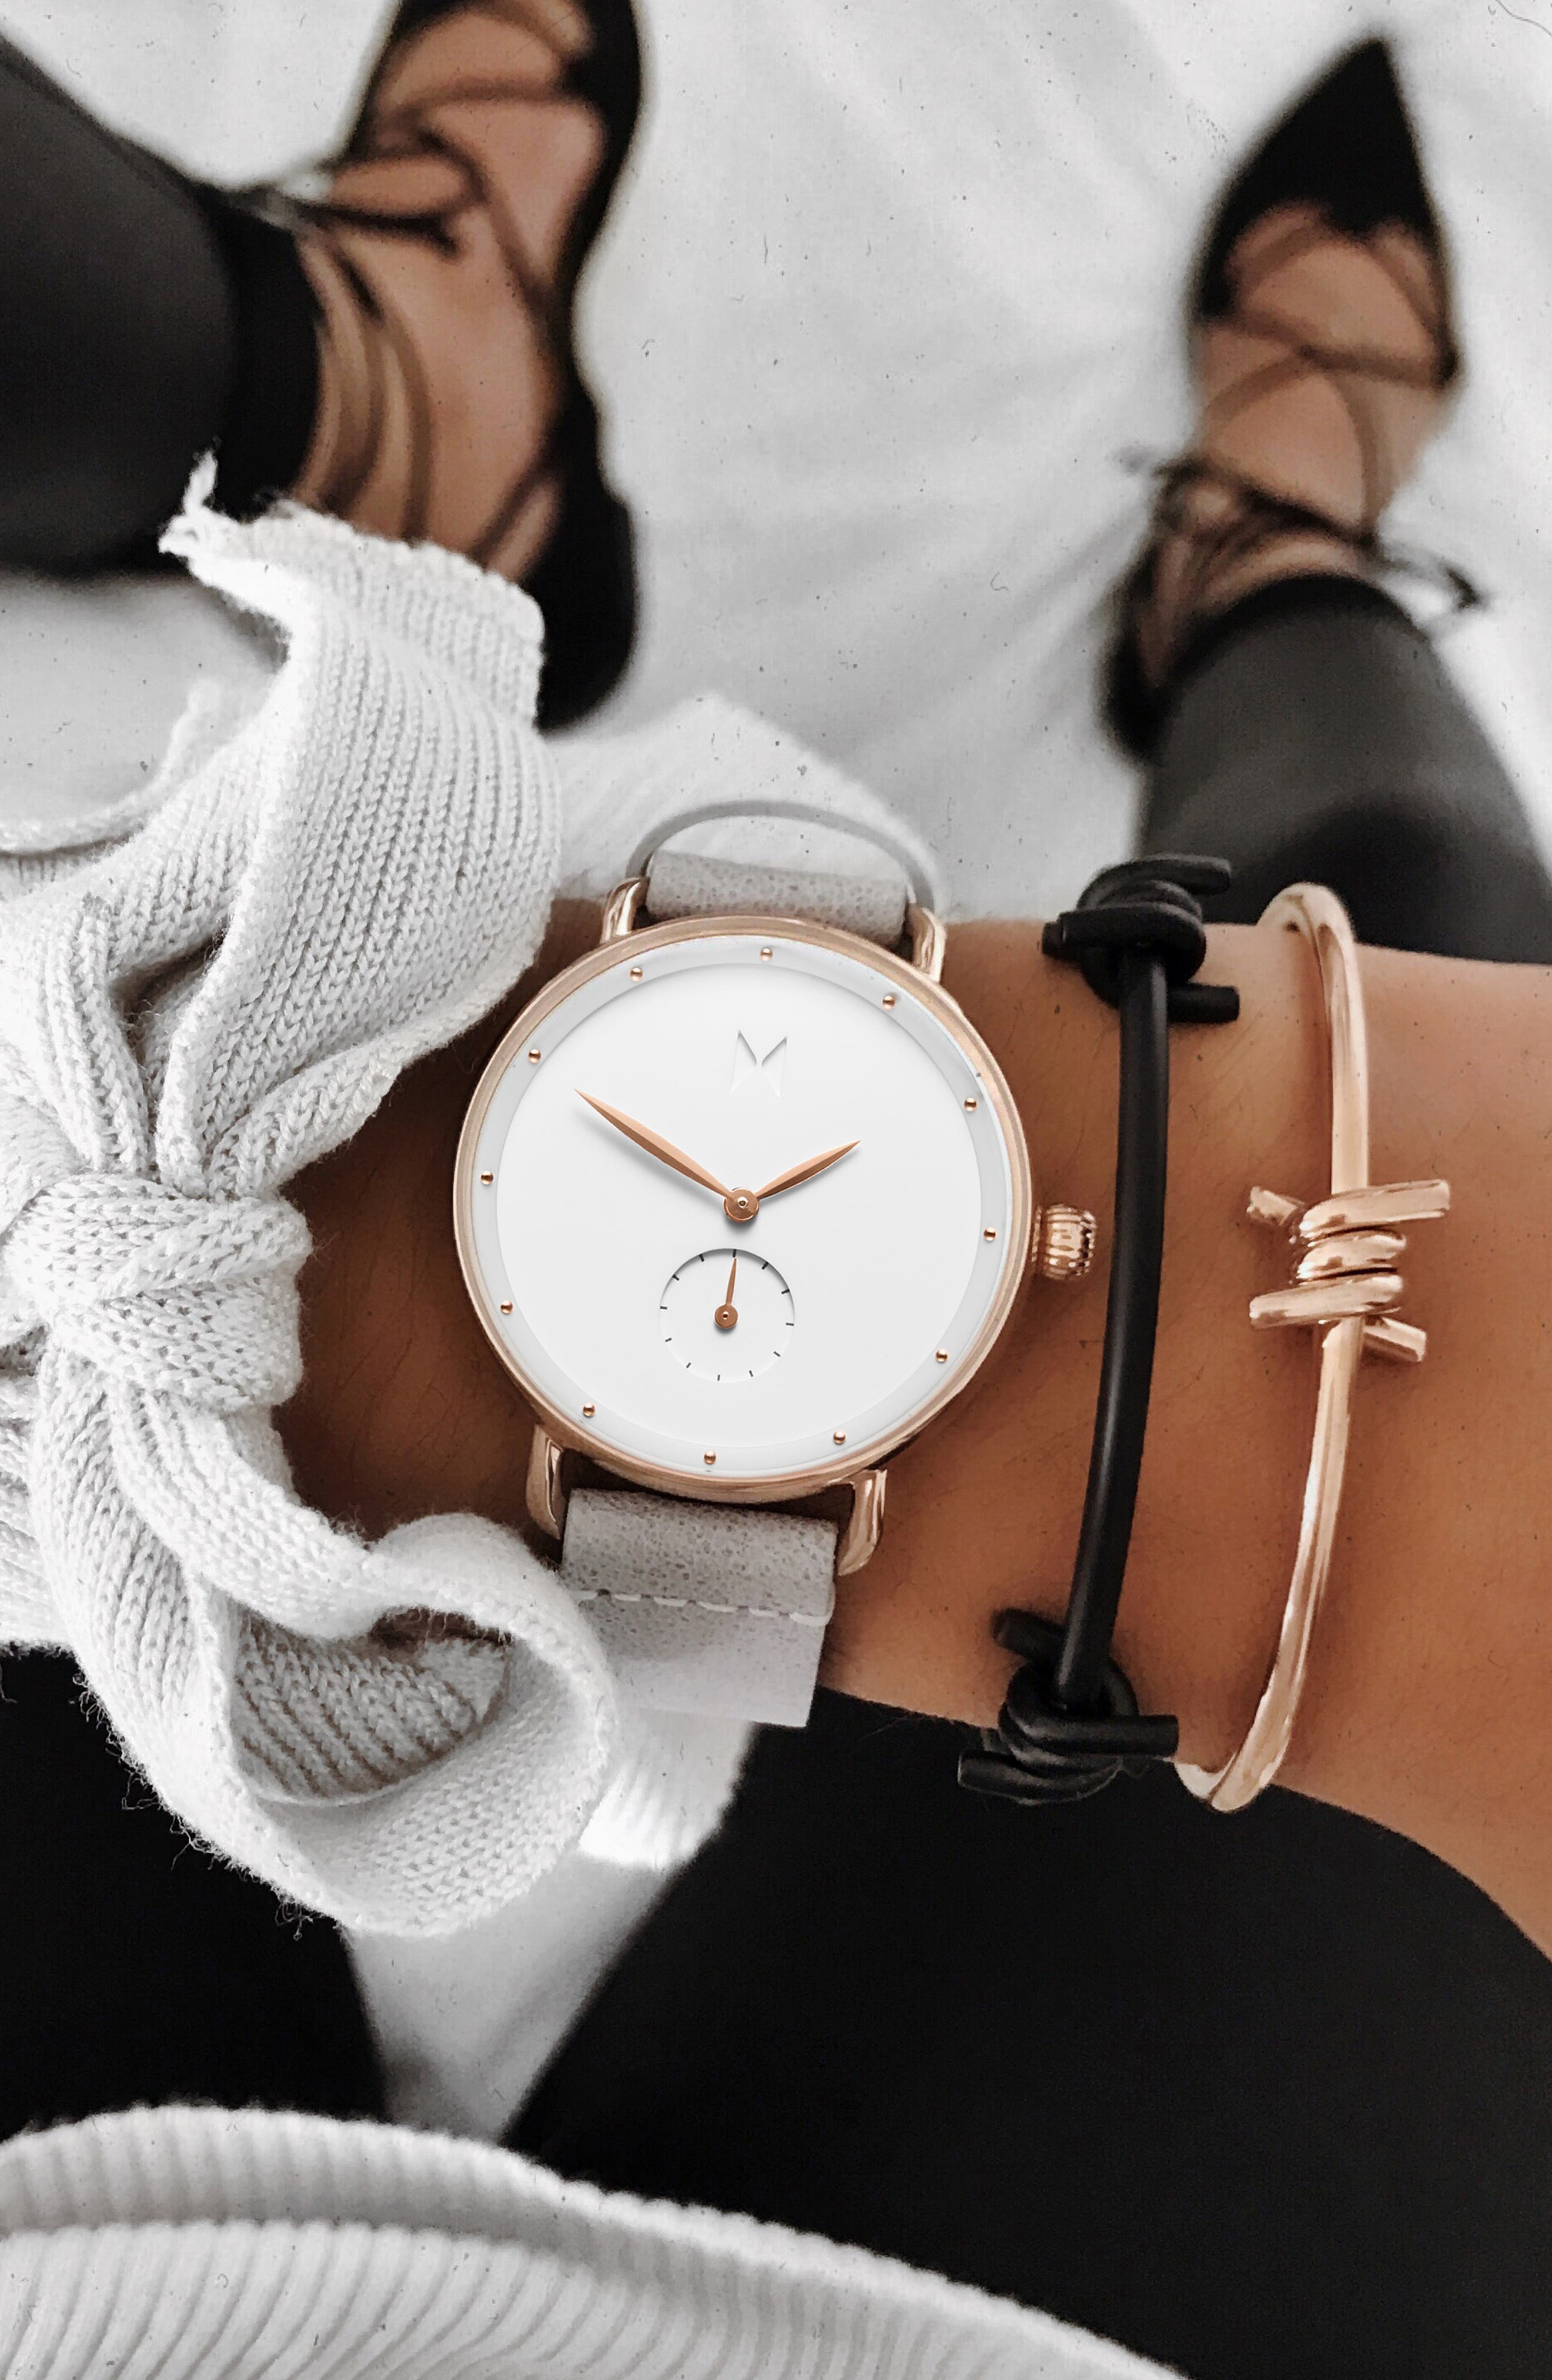 MVMT, Bloom Leather Strap Watch, 36mm, Alternate thumbnail 2, color, GREY/ WHITE/ ROSE GOLD